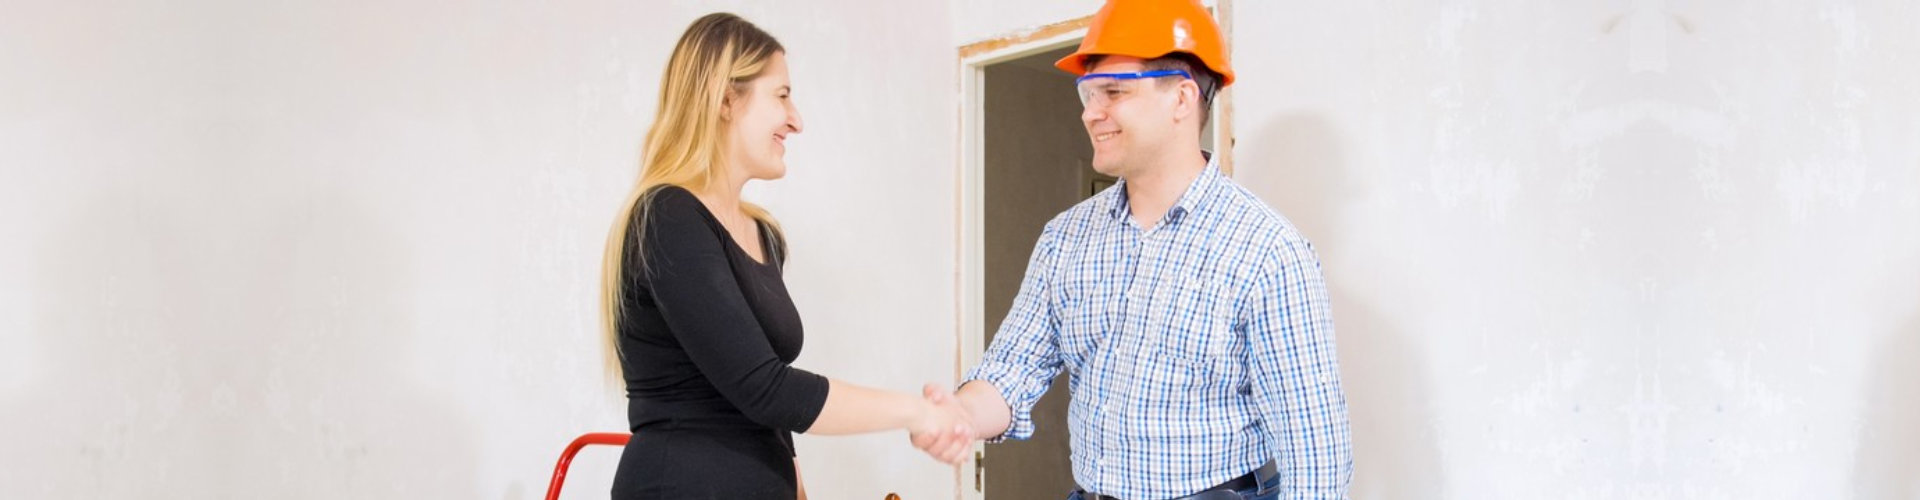 young businesswoman shaking hands with contractor at house under renovation